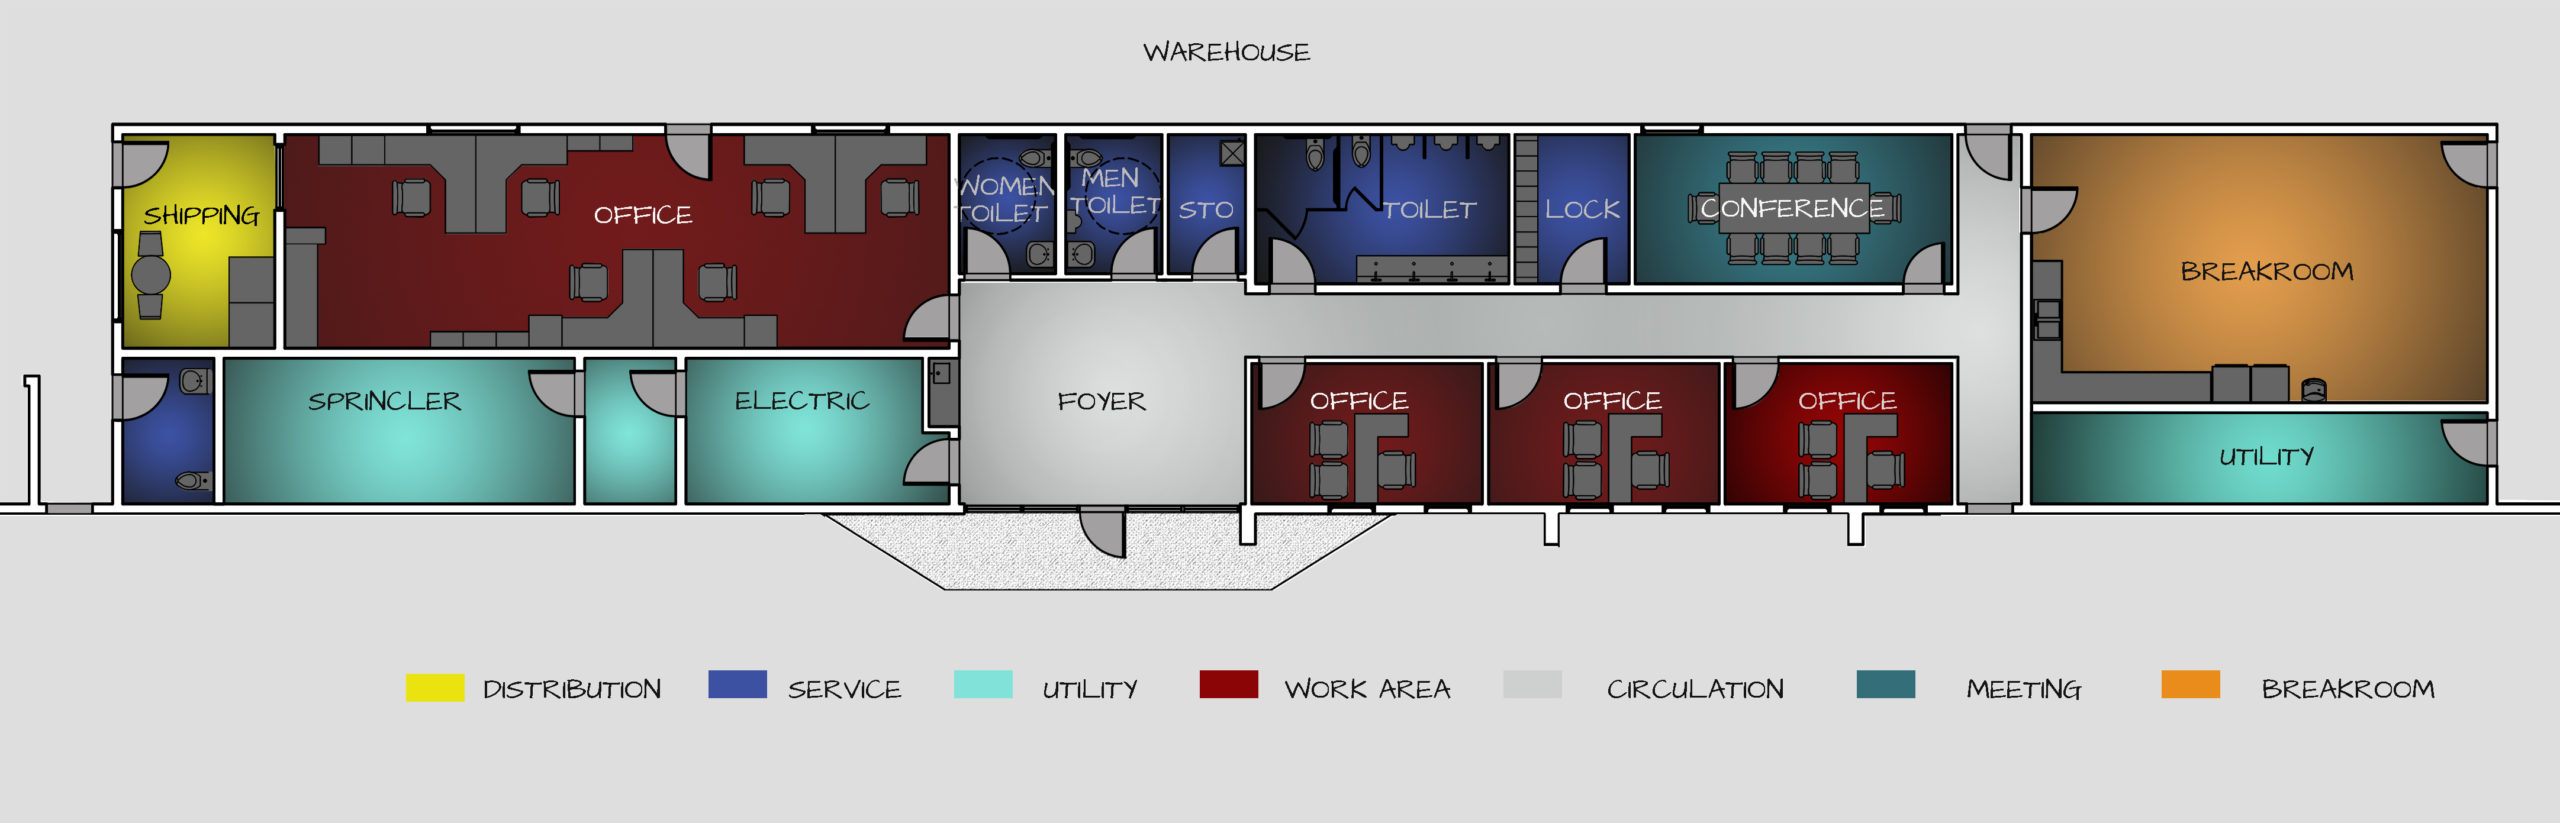 Renovated Floor Plan for Industrial Office Space